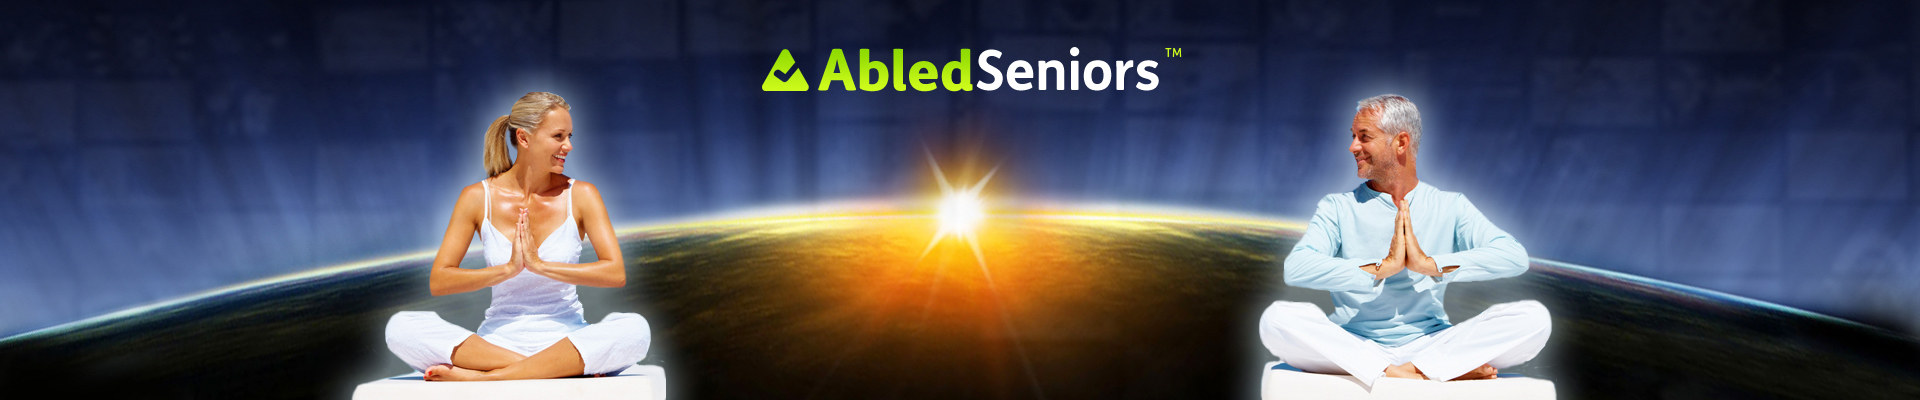 AbledSeniors banner shows an older man and woman sitting in the lotus position with their palms together and looking at each other while they sit on cushions in the foreground over the background of the Earth at sunrise as seen from space with the Abled Seniors logo centered above.